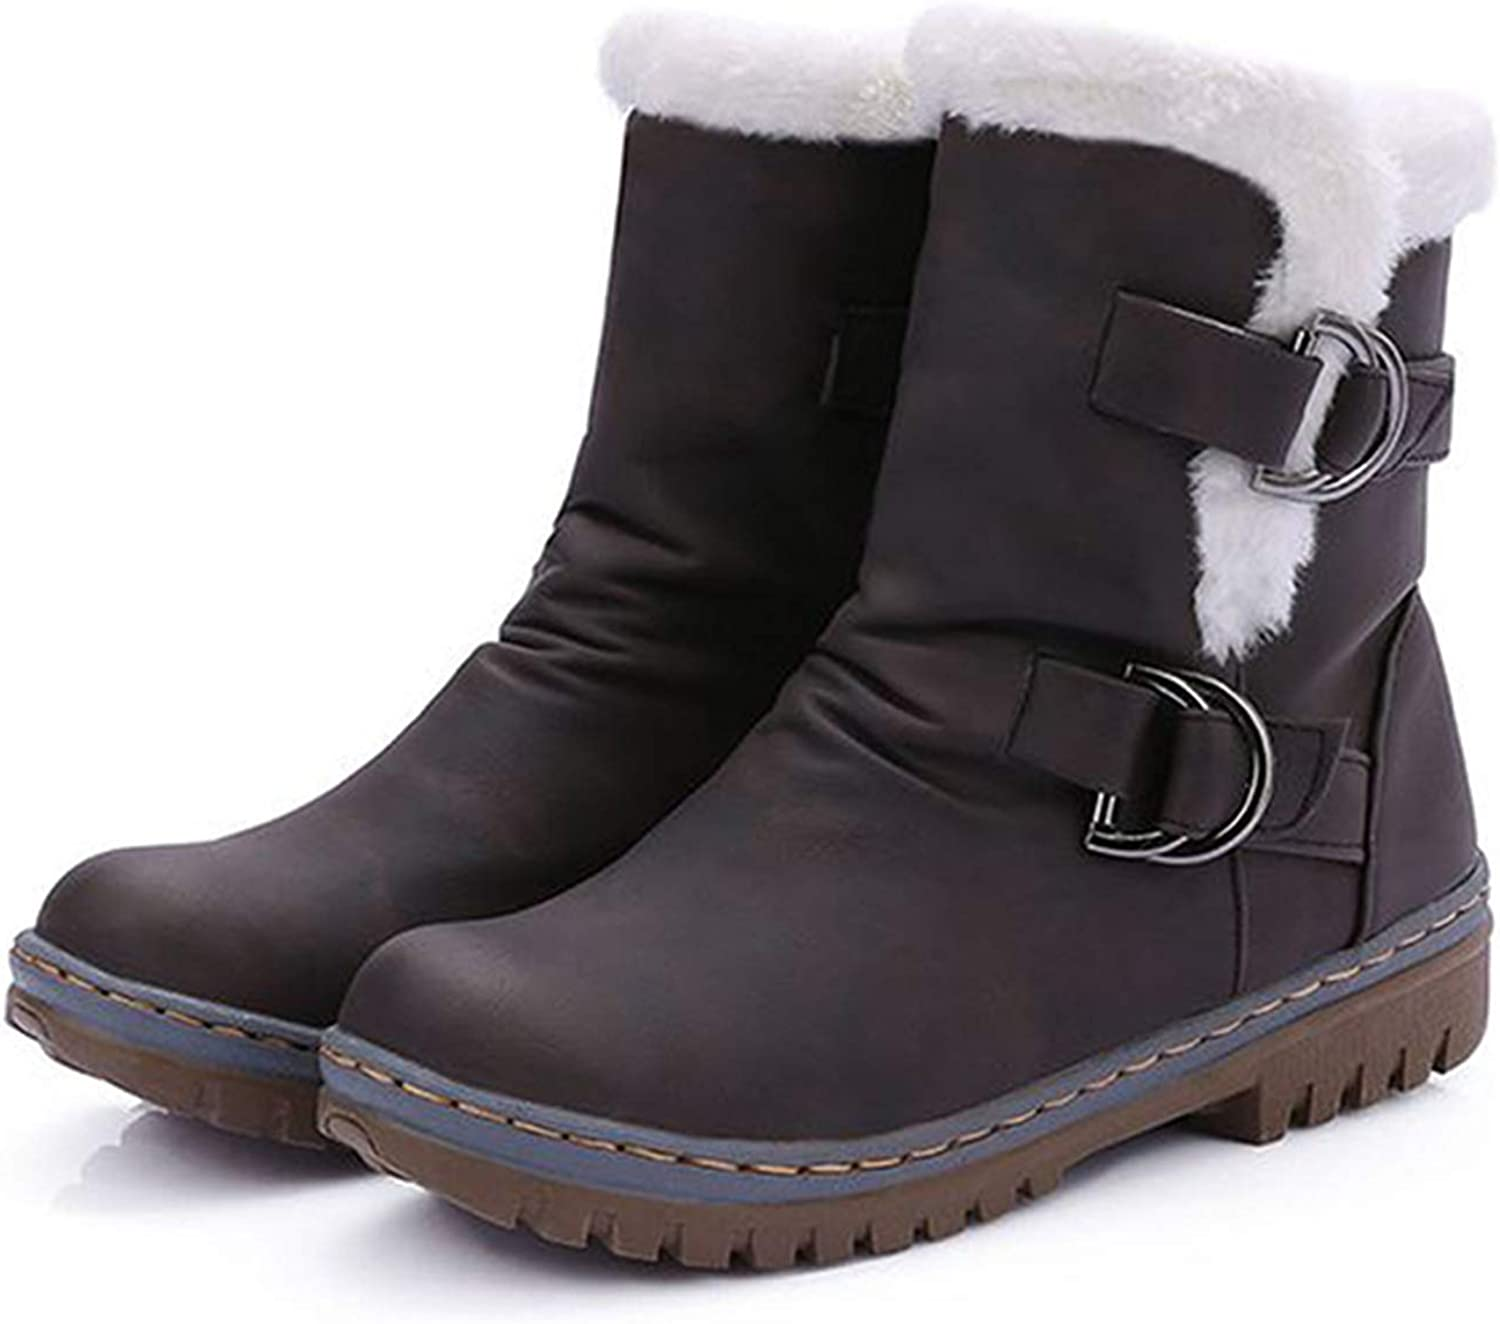 I'm good at you Fashion Winter Boots Women Snow Boots Flat Heels Winter shoes Warm Fur Boot Mid-Calf Women's shoes